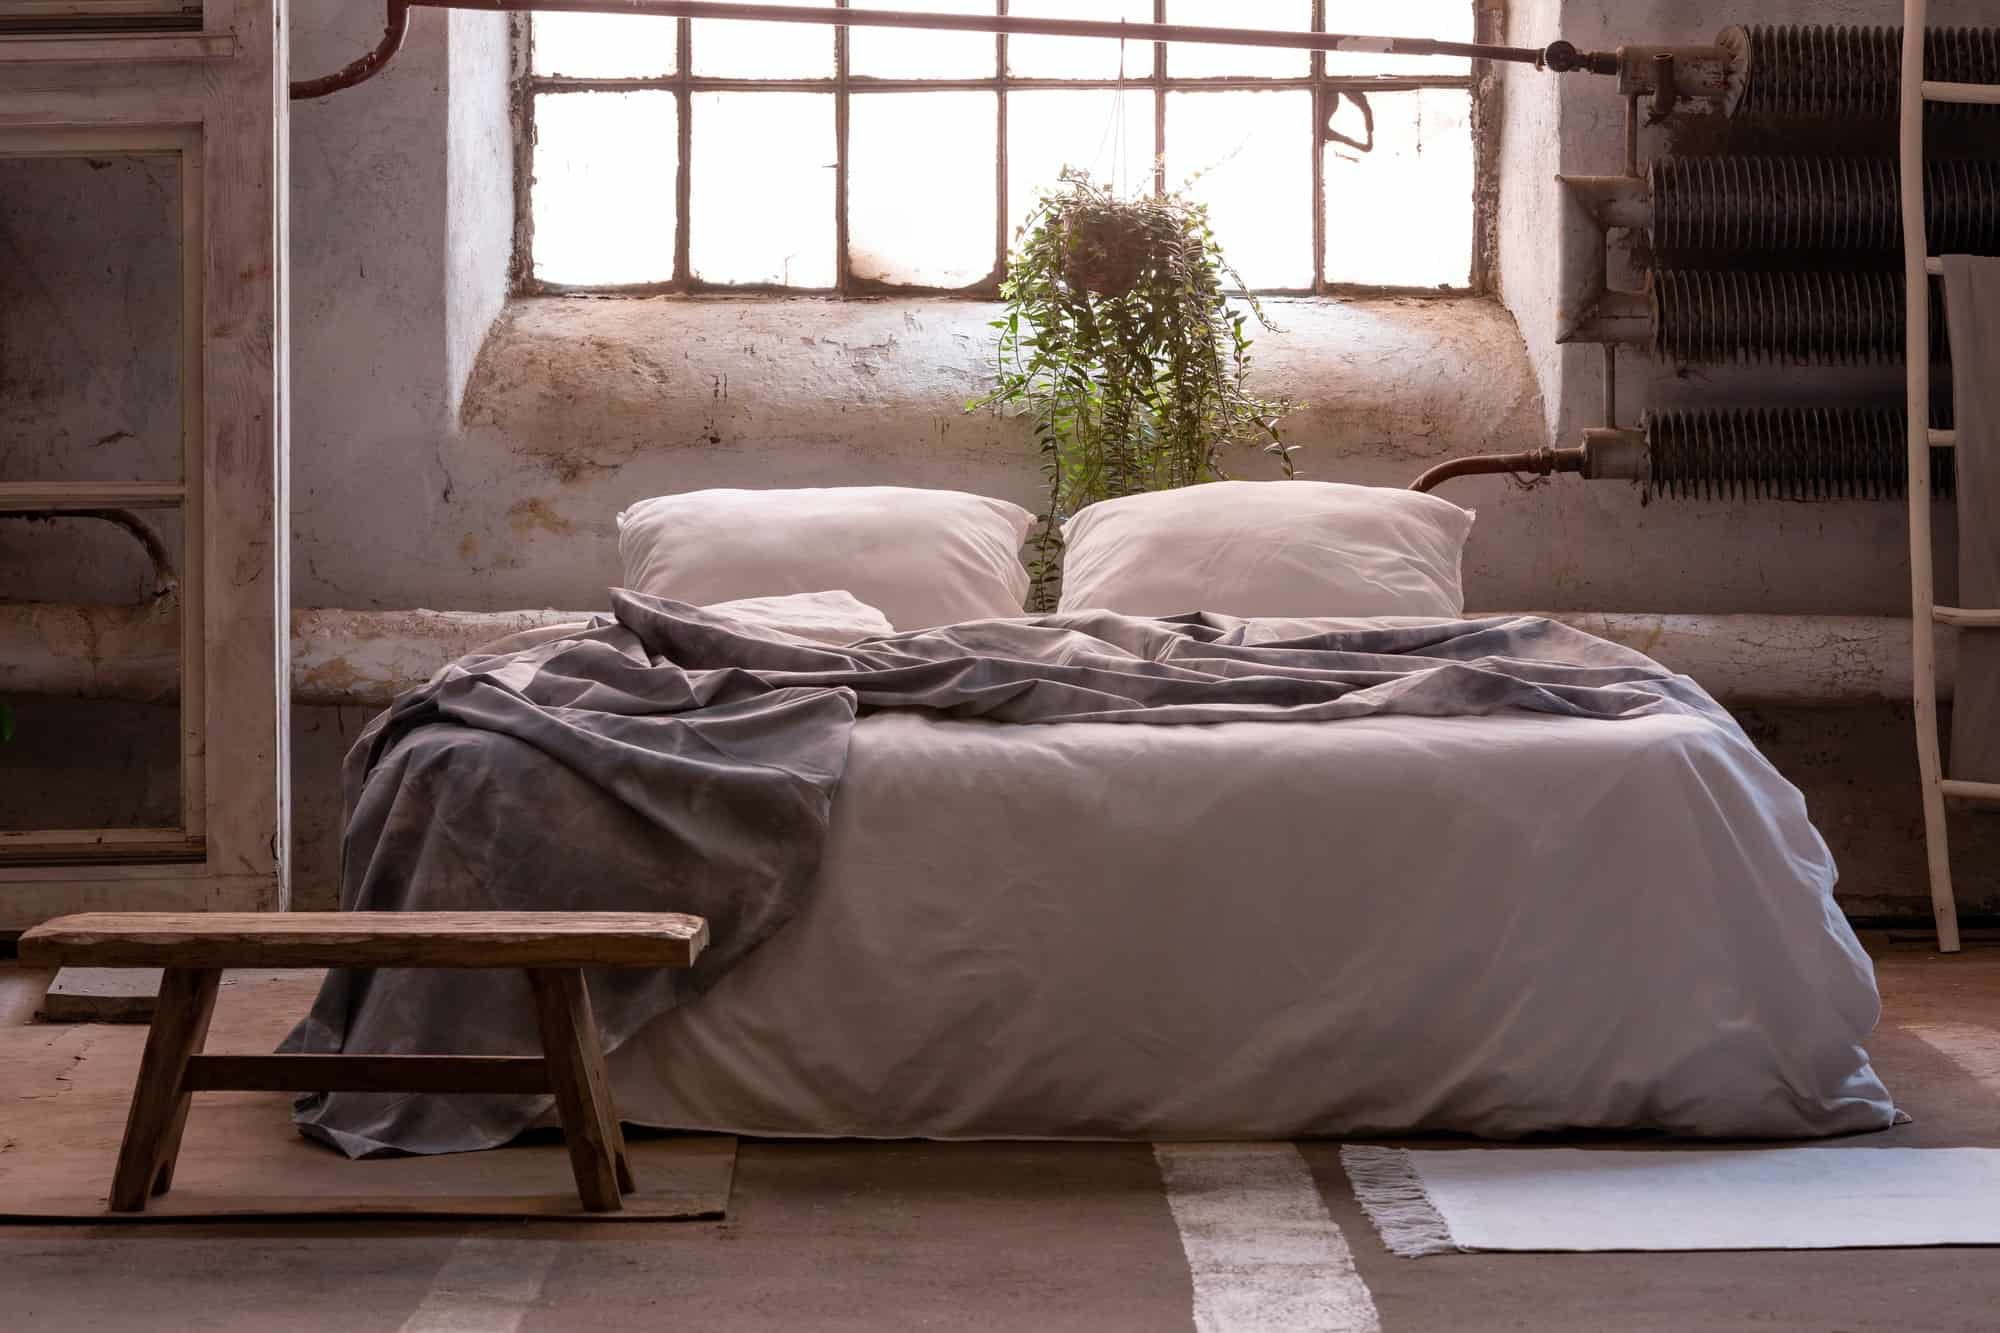 Real photo of a wabi sabi bedroom interior with a bed, plant and